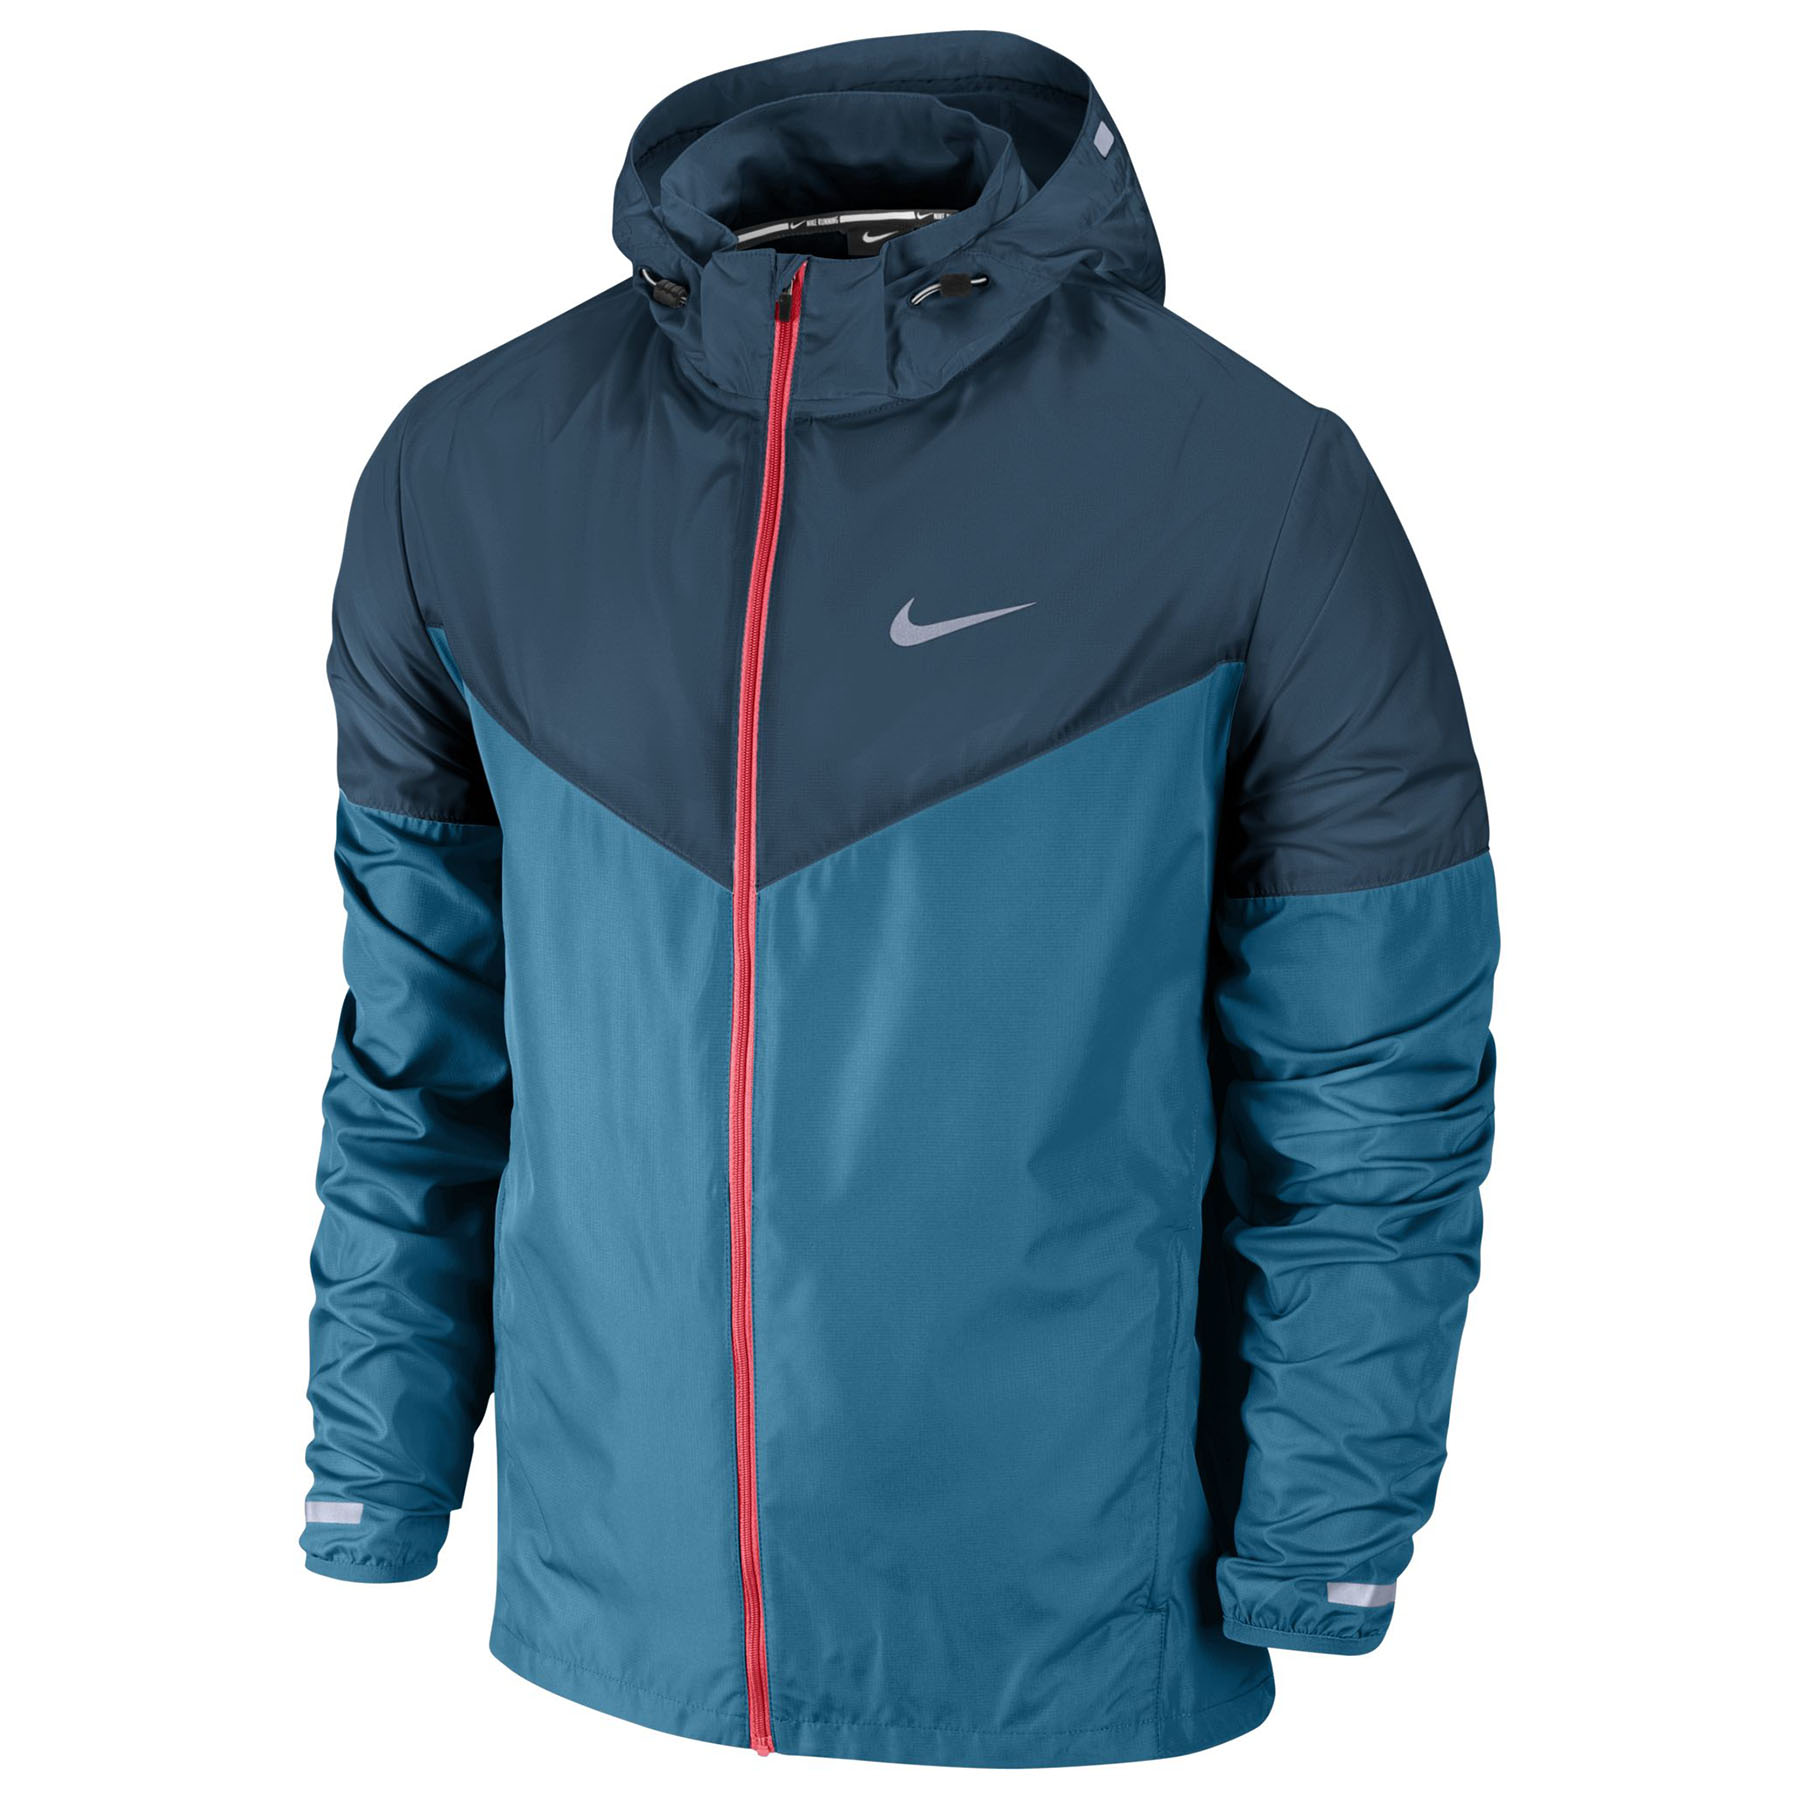 Nike Vapor Jacket Blue